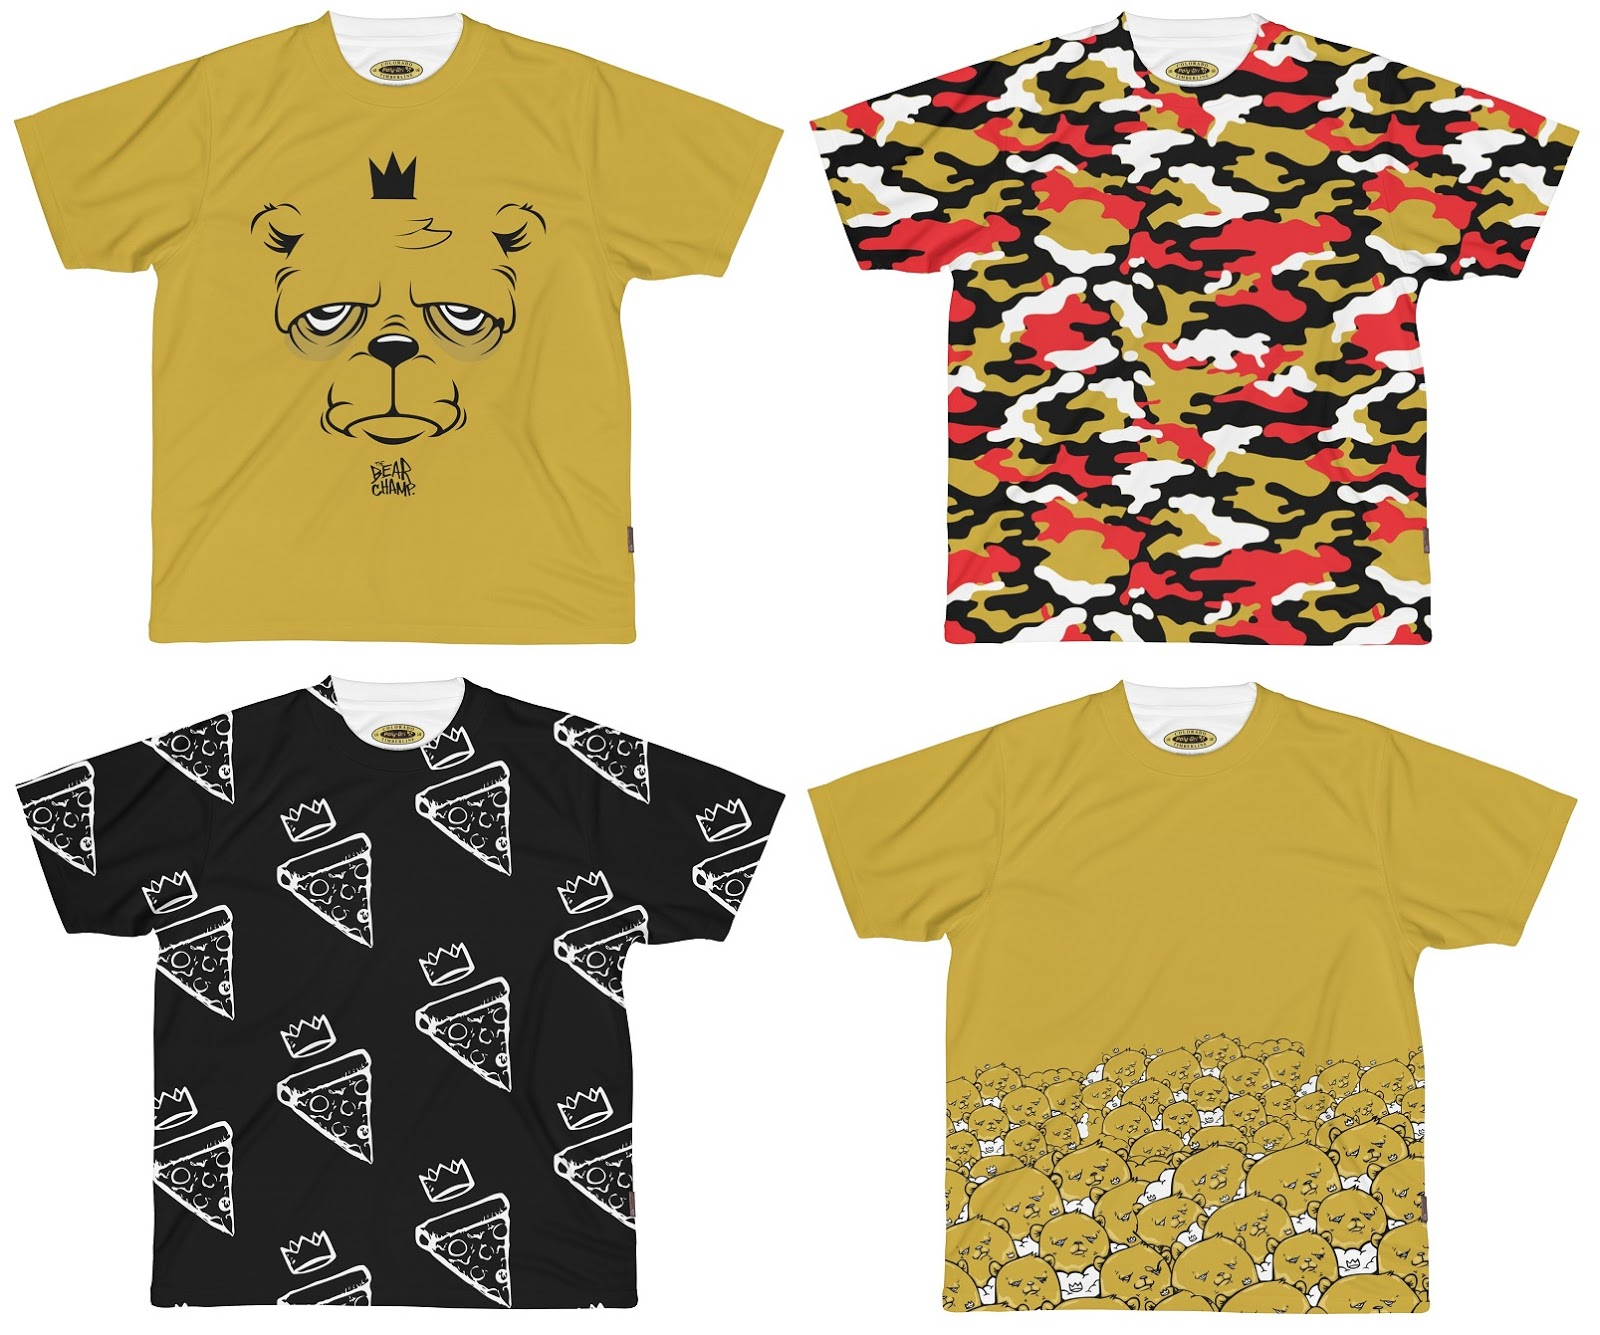 44d4a8d72e9 The Blot Says...  The Bear Champ Limited Edition T-Shirt Collection ...